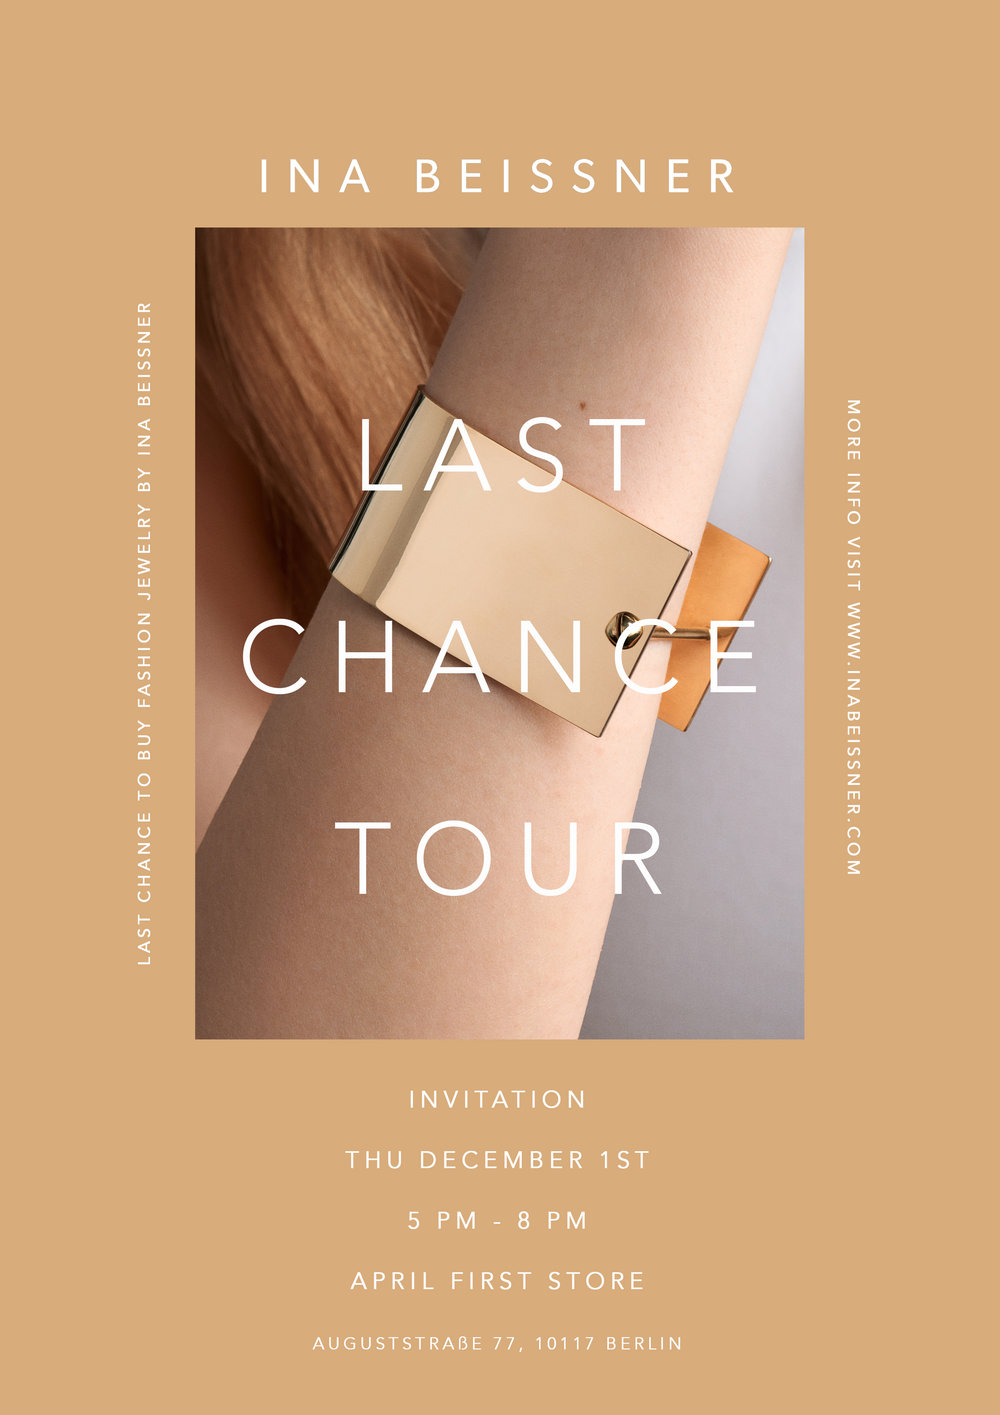 INA BEISSNER LAST CHANCE TOUR APRIL FIRST INVITATION.jpg